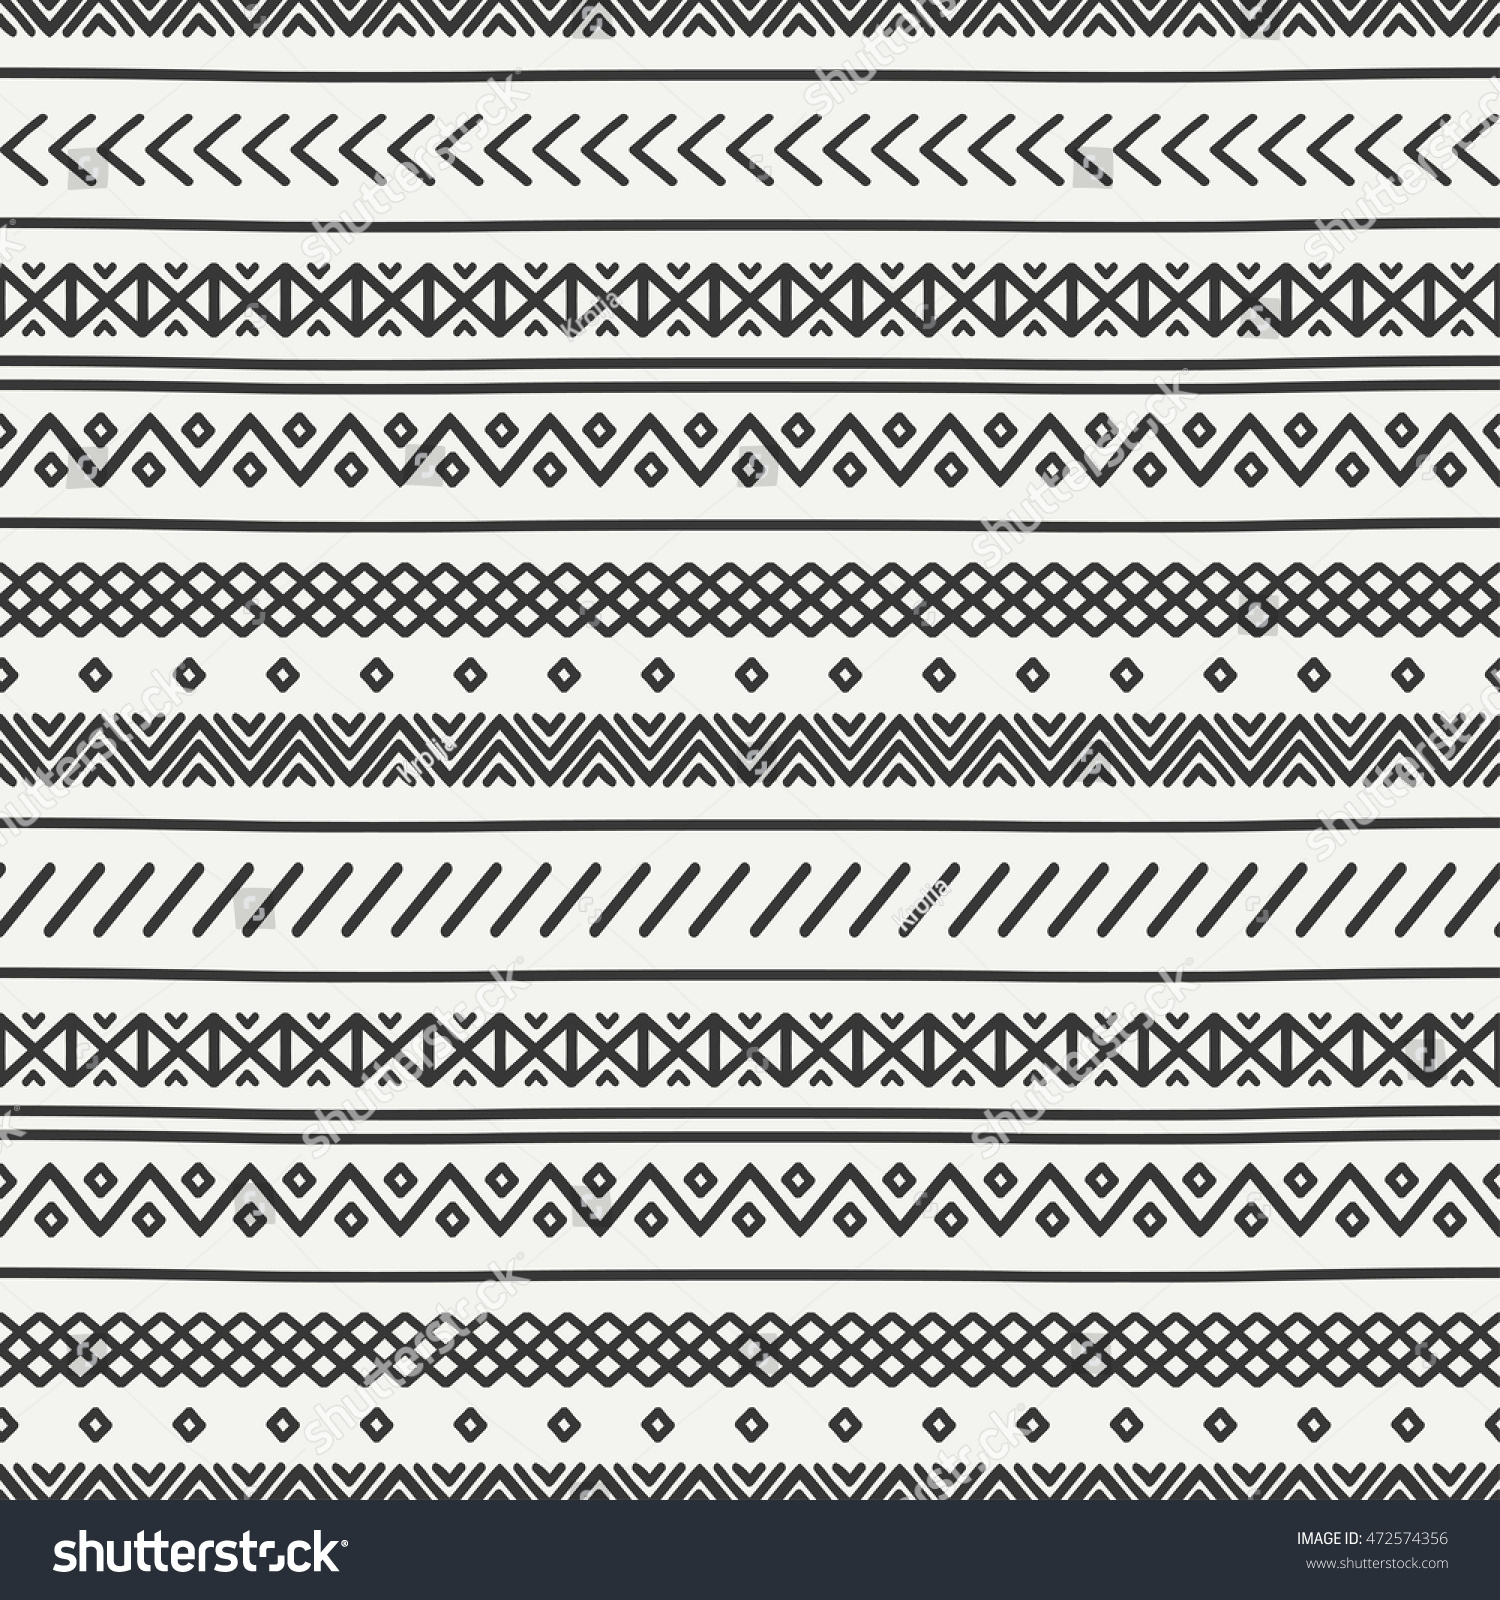 Background geometric mexican patterns seamless vector zigzag maya - Tribal Hand Drawn Line Geometric Mexican Ethnic Seamless Pattern Border Wrapping Paper Doodles